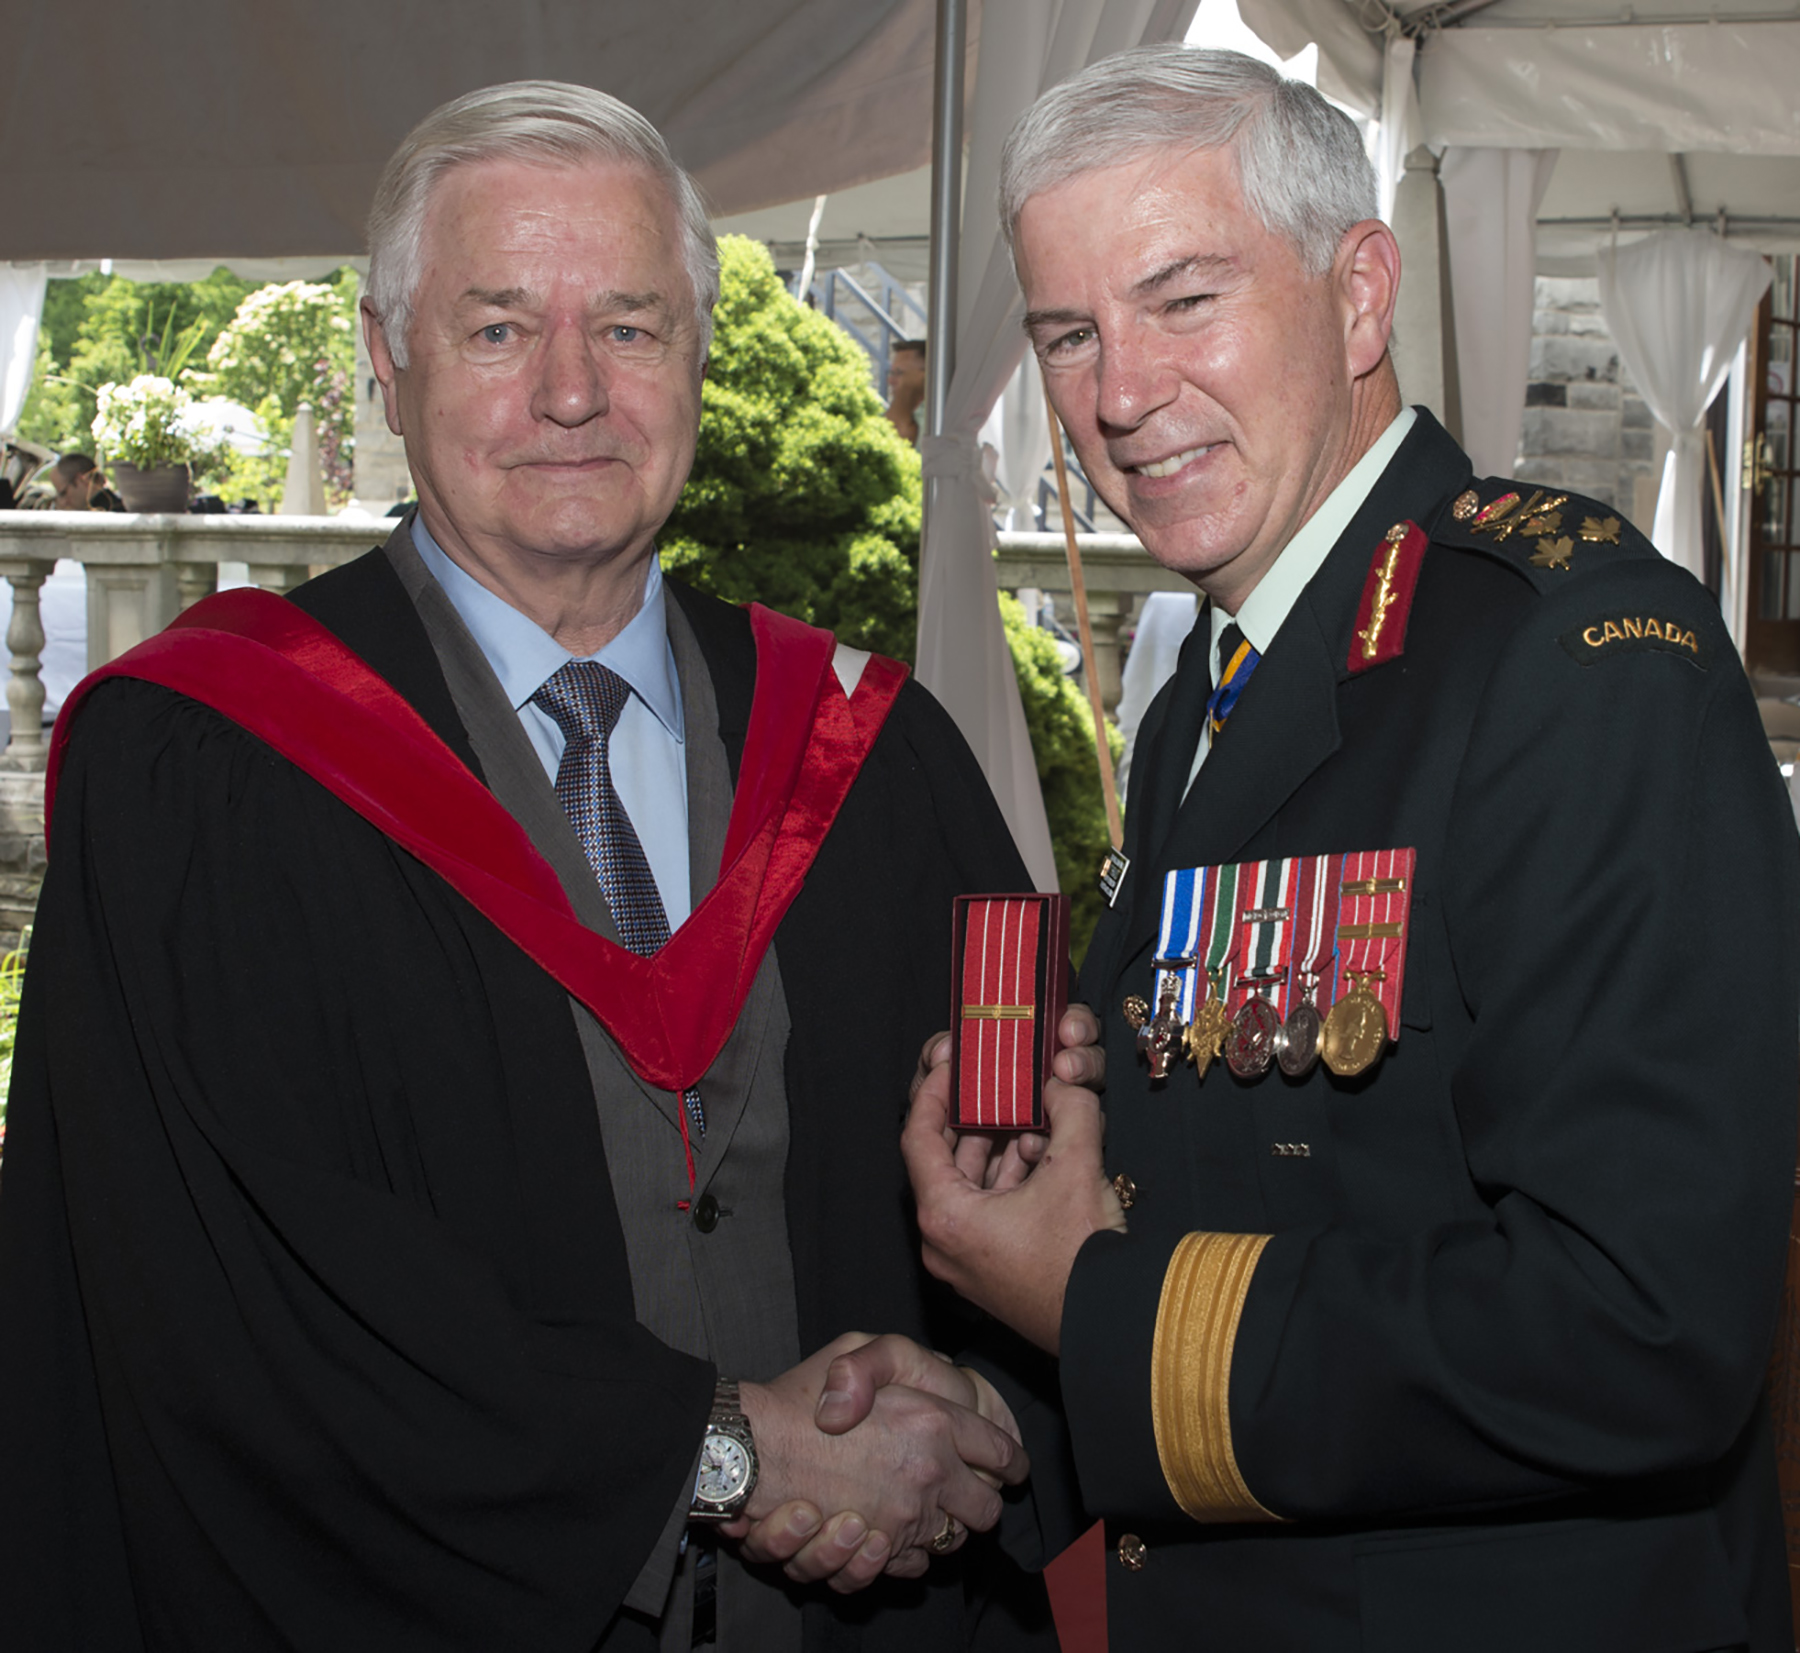 Lieutenant-General (retired) Fred Sutherland (left) receives the fourth bar to the Canadian Forces Decoration (CD) from Lieutenant-General Guy Thibault, Vice Chief of the Defence Staff